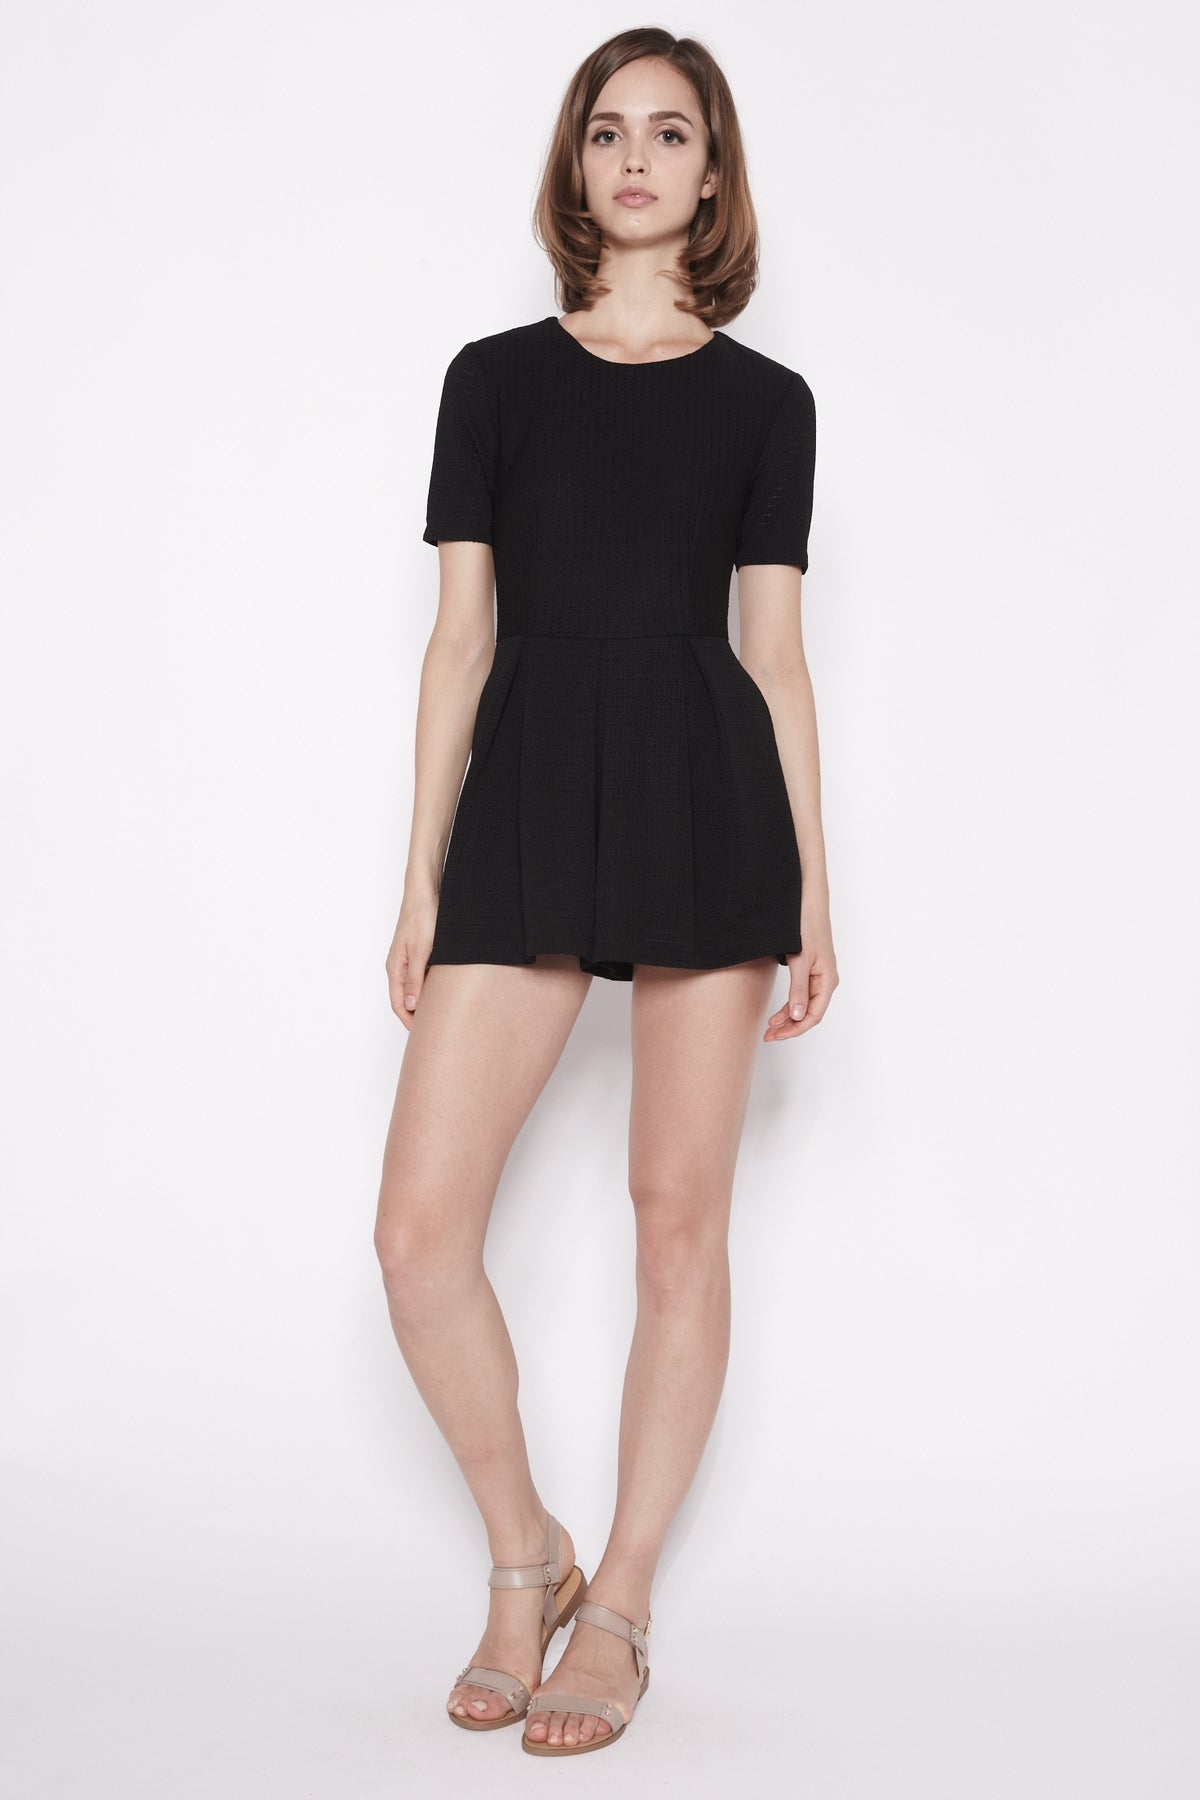 Cut-Out Back Textured Romper In Black